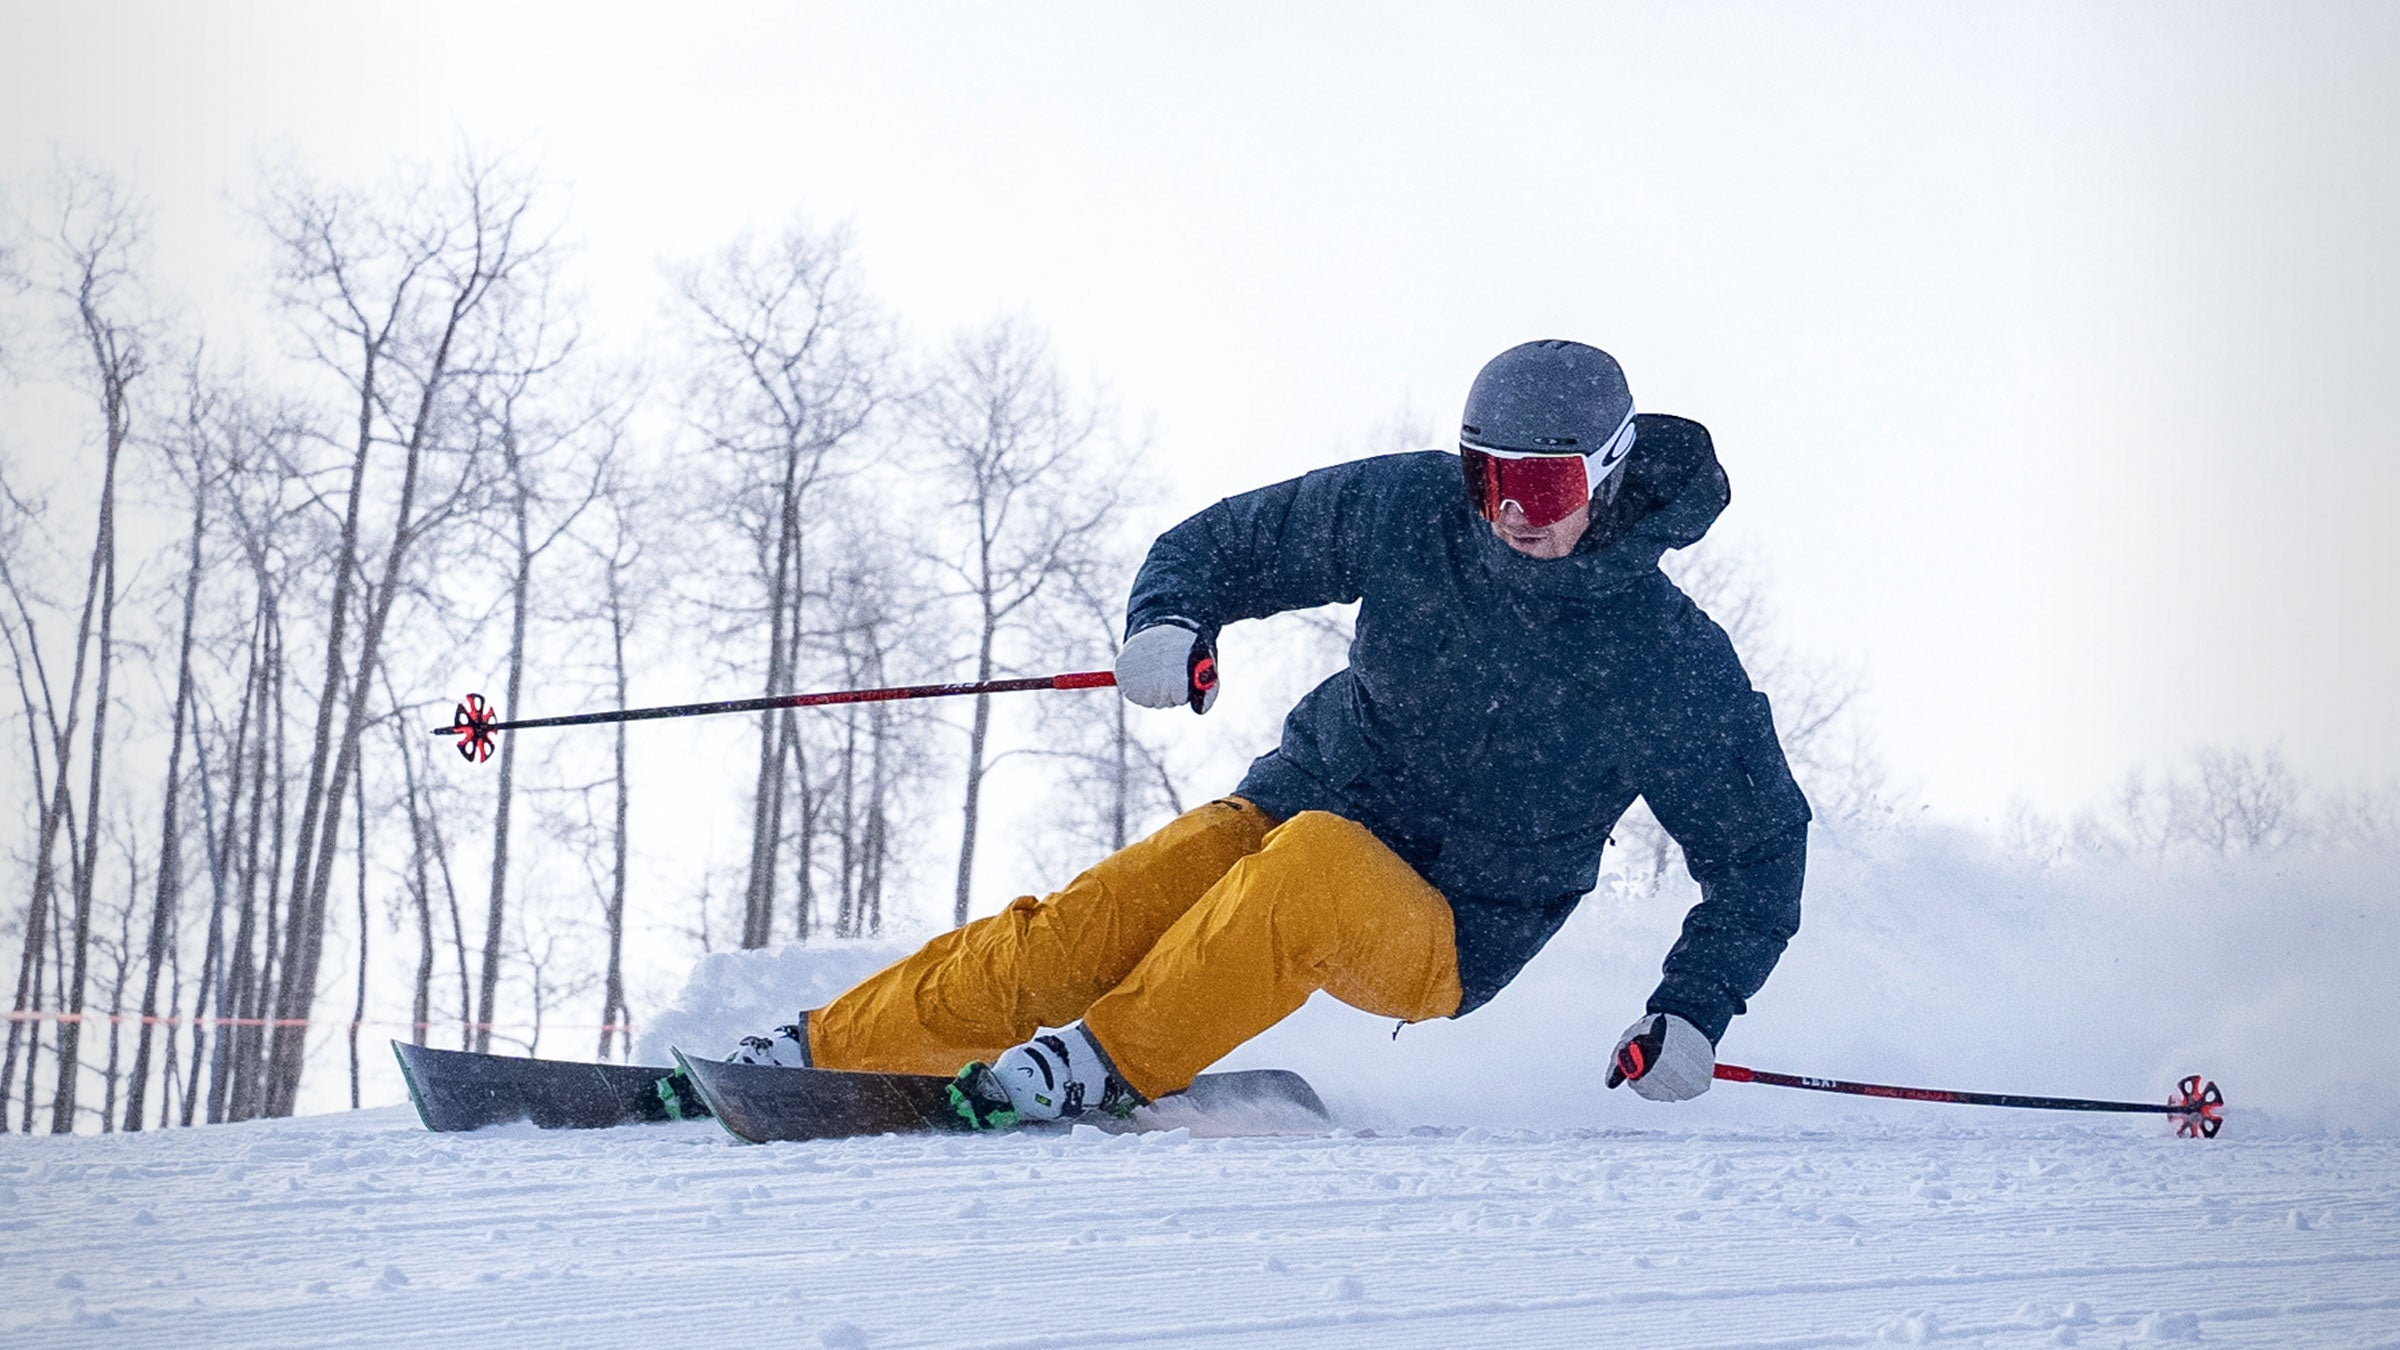 skier carving turn in turmeric capitol ski pant